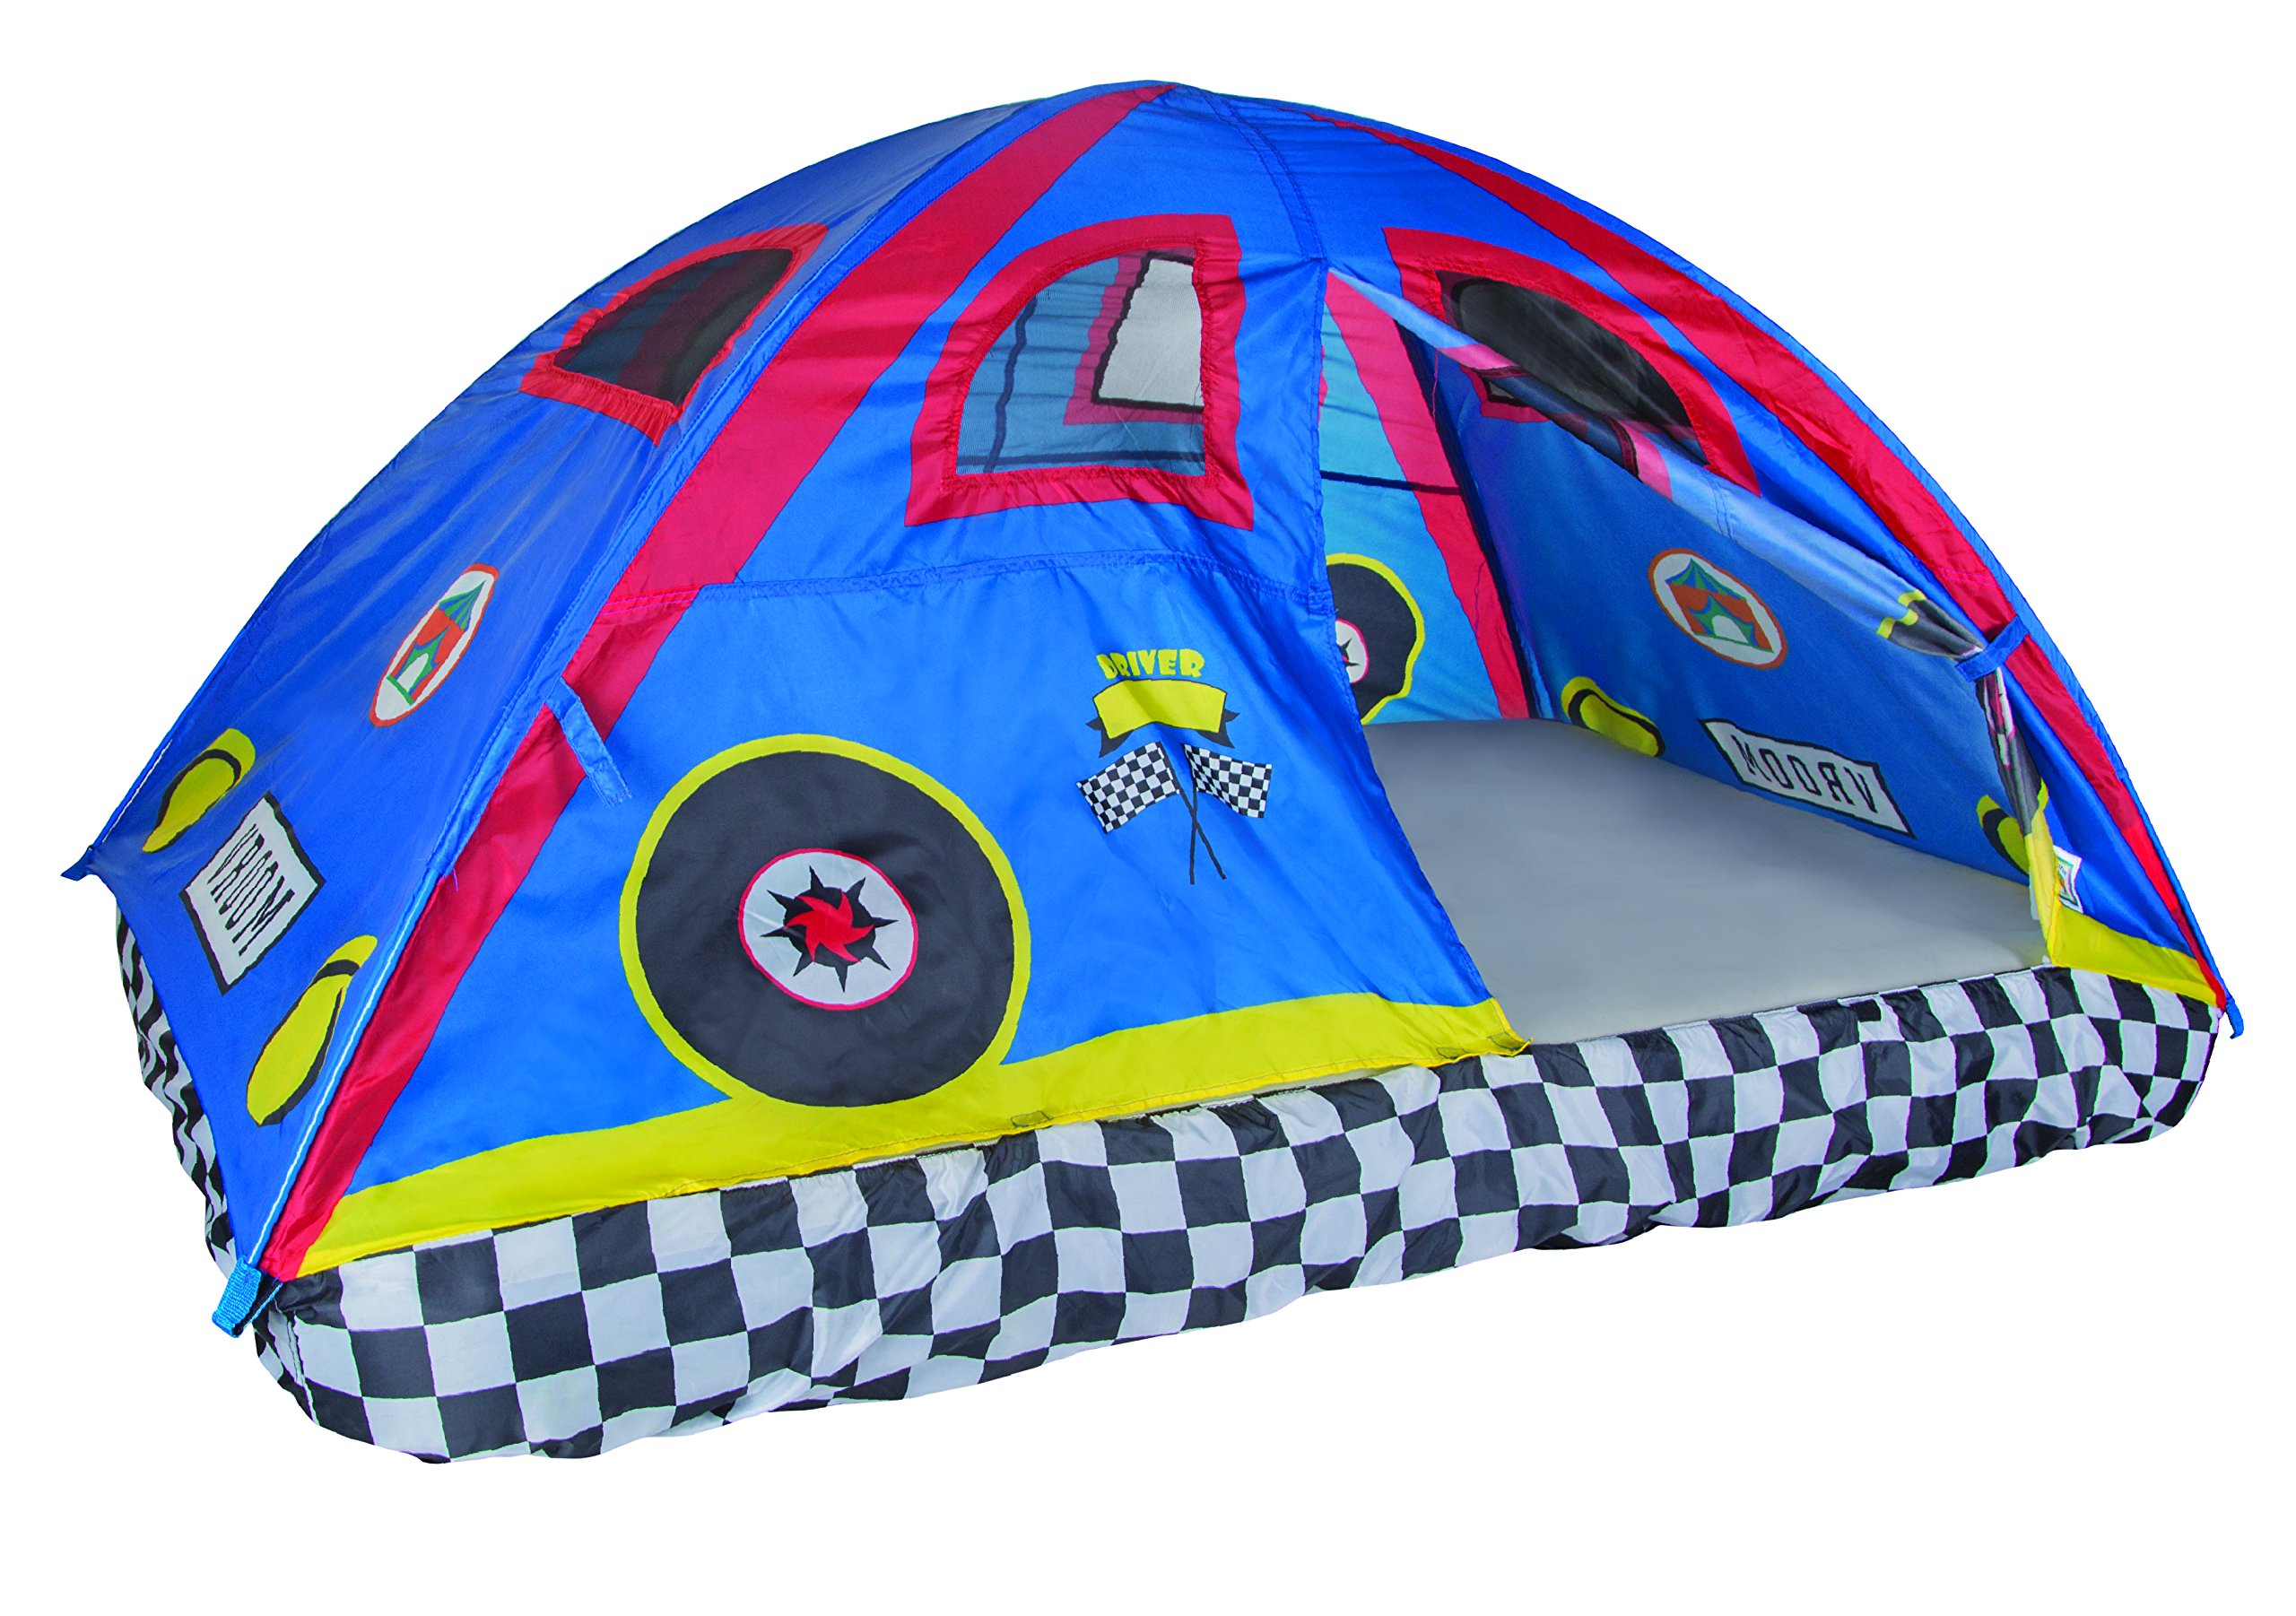 Pacific Play Tents 19711 Kids Rad Racer Bed Tent Playhouse - Full Size Mattress by Pacific Play Tents